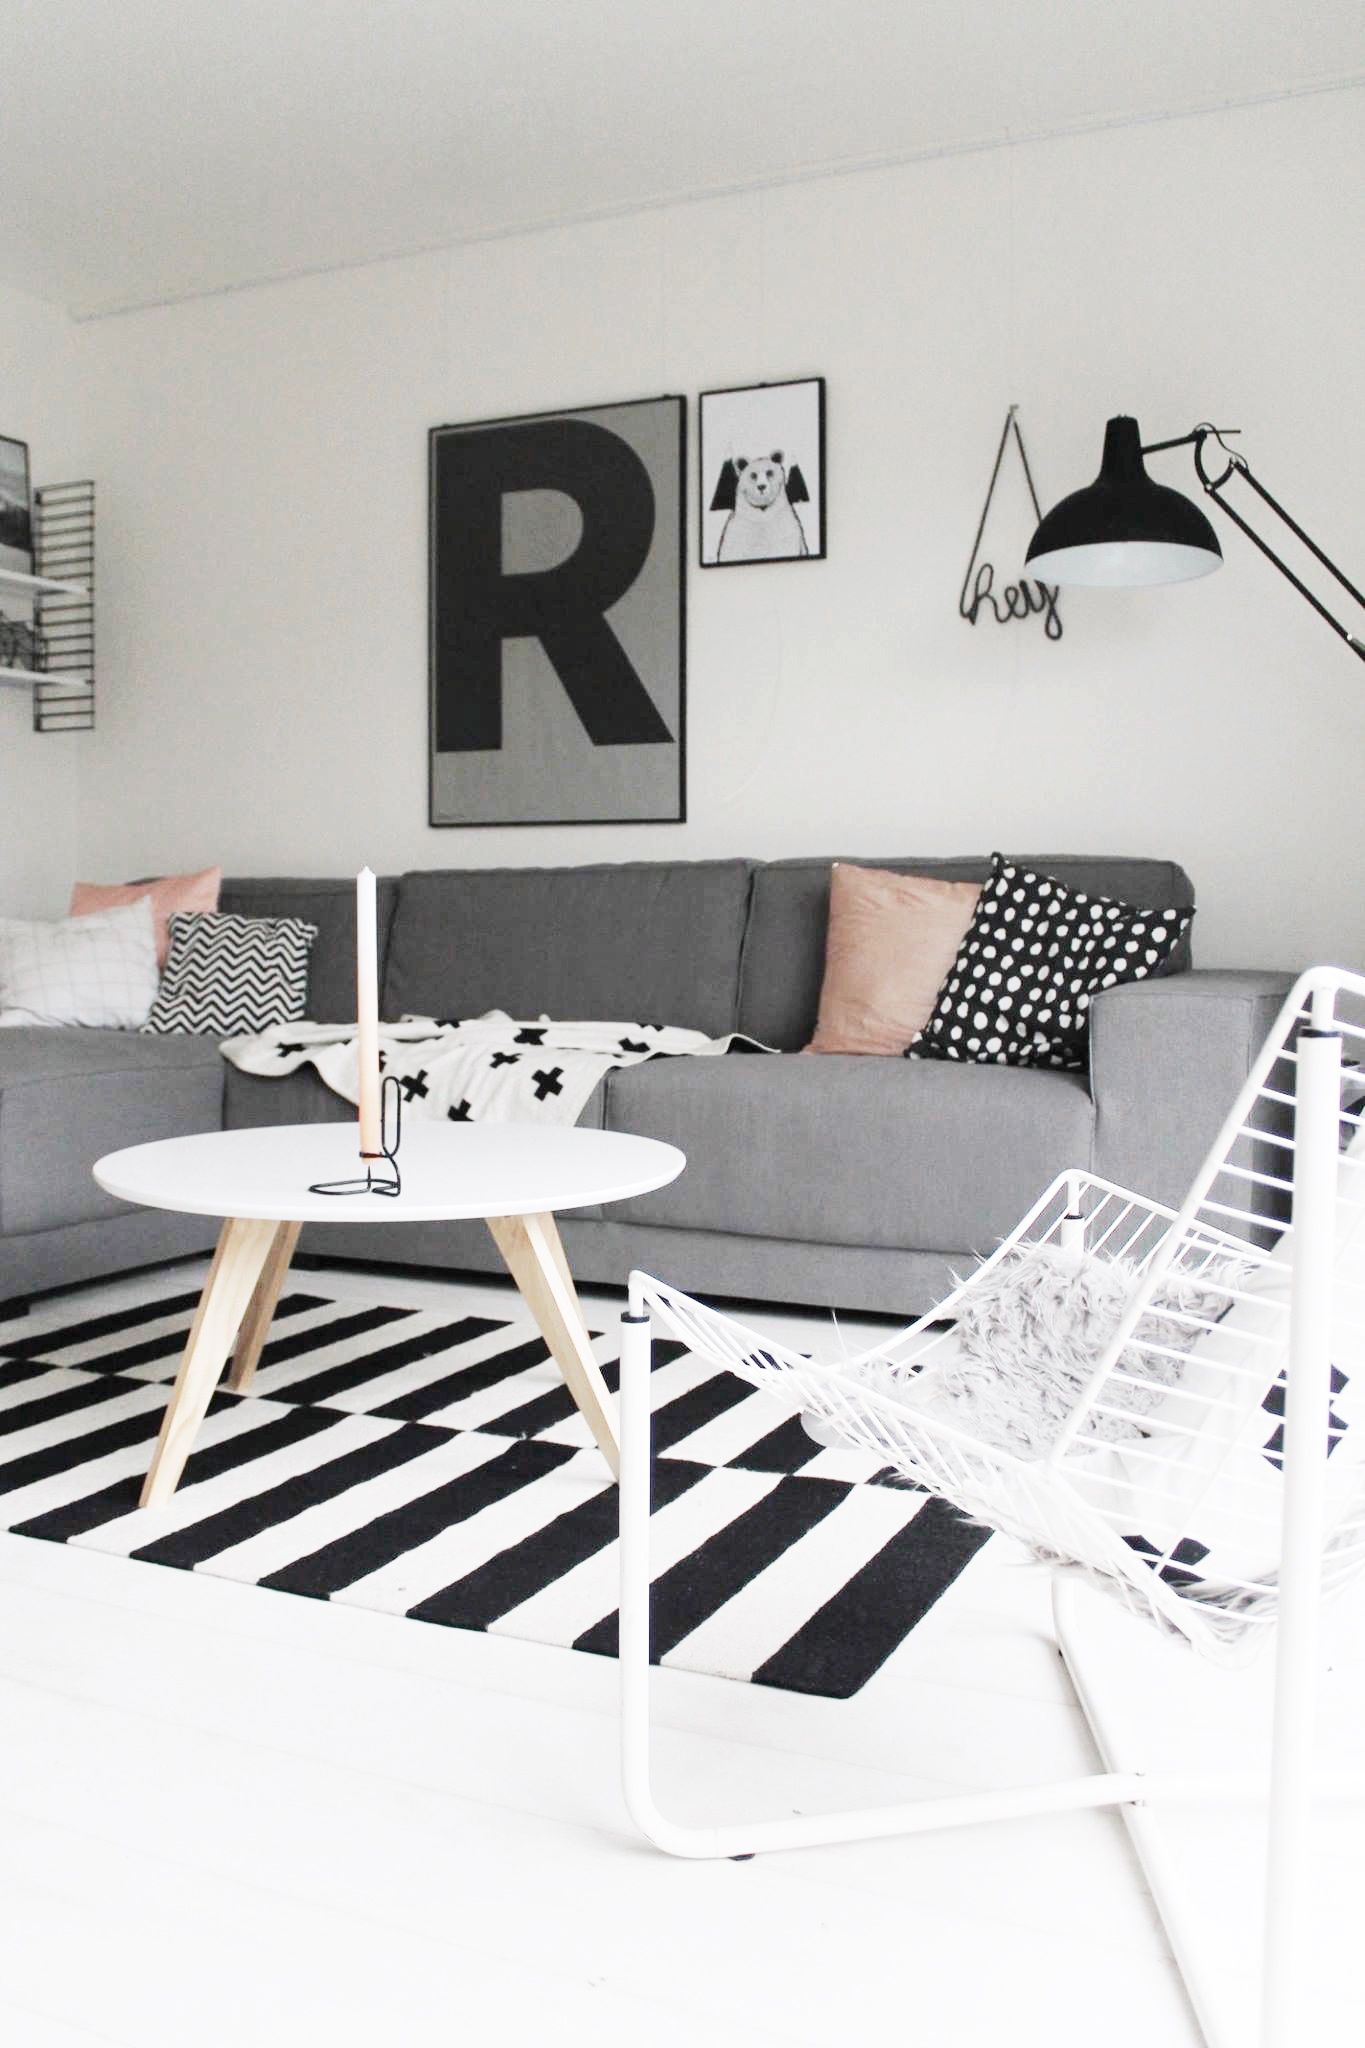 Best Home Decor Inspiration Scandinavian Feeling With Black And 400 x 300